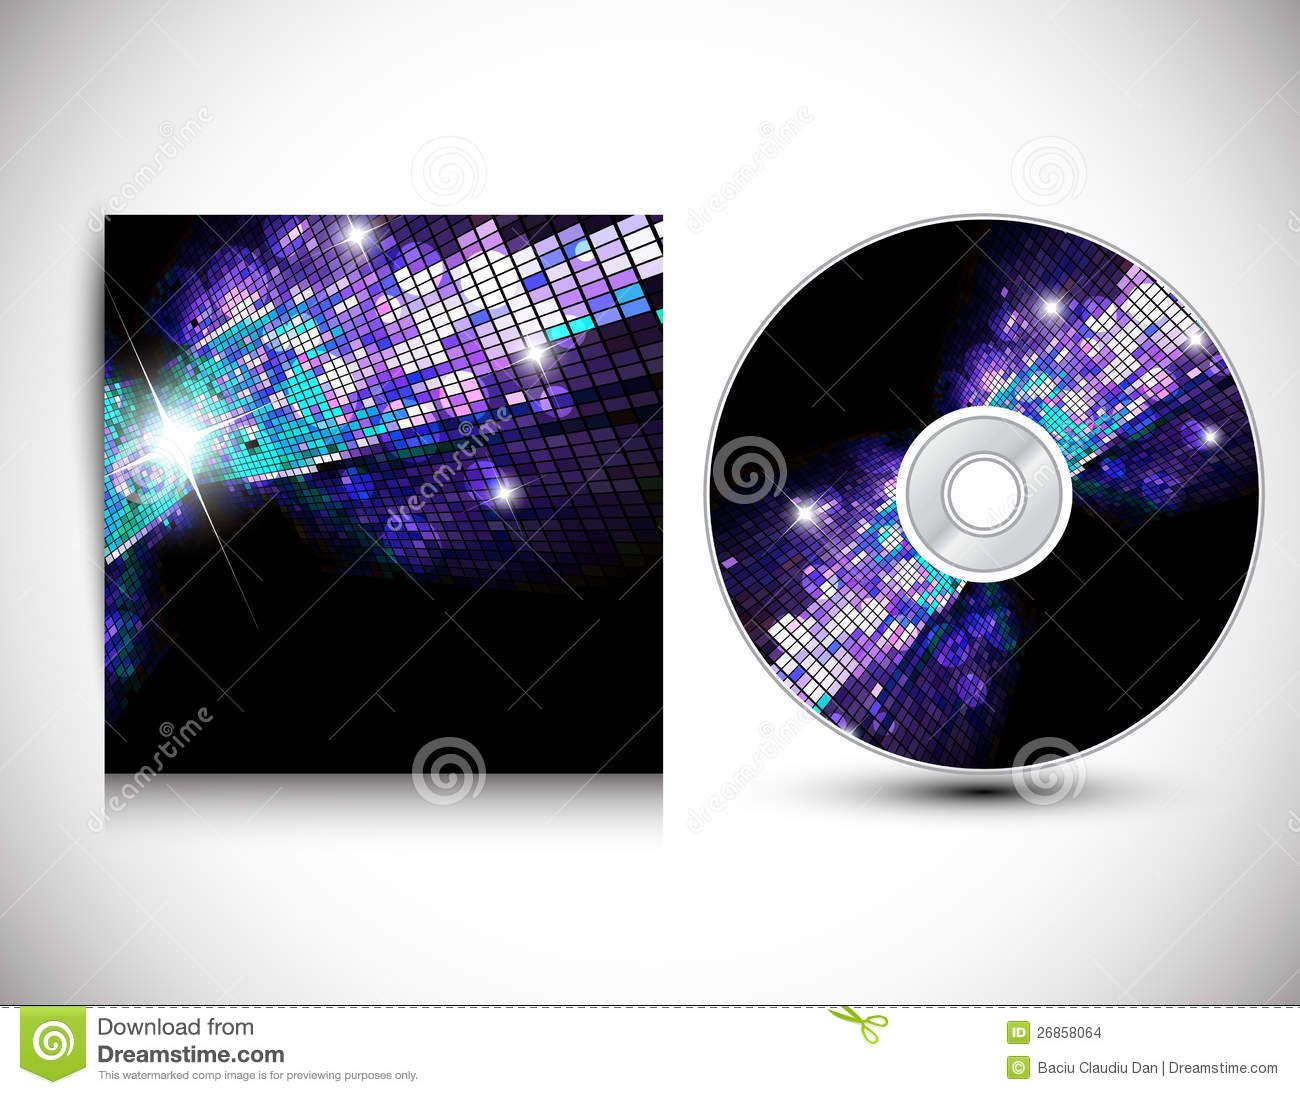 005 Archaicawful Music Cd Cover Design Template Free Download Highest Quality Full